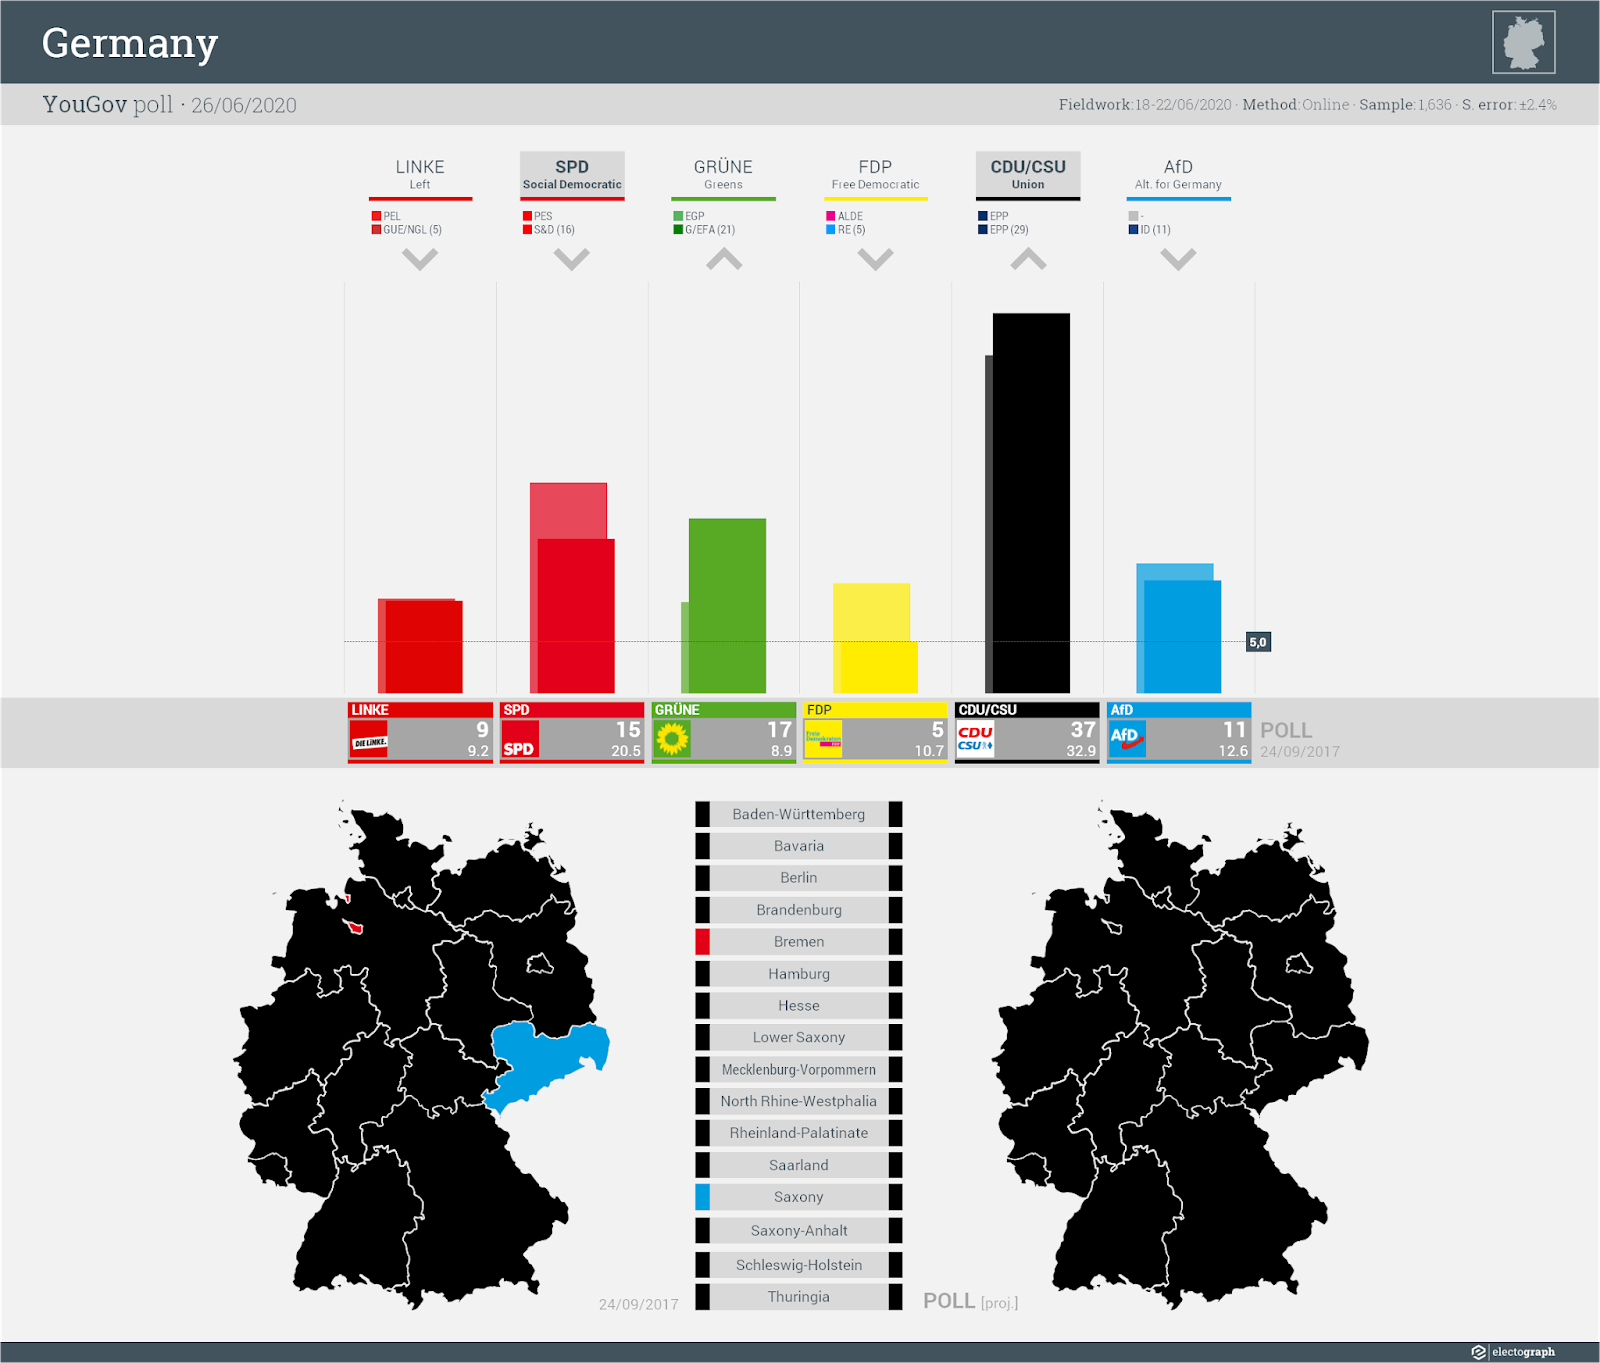 GERMANY: YouGov poll chart, 26 June 2020